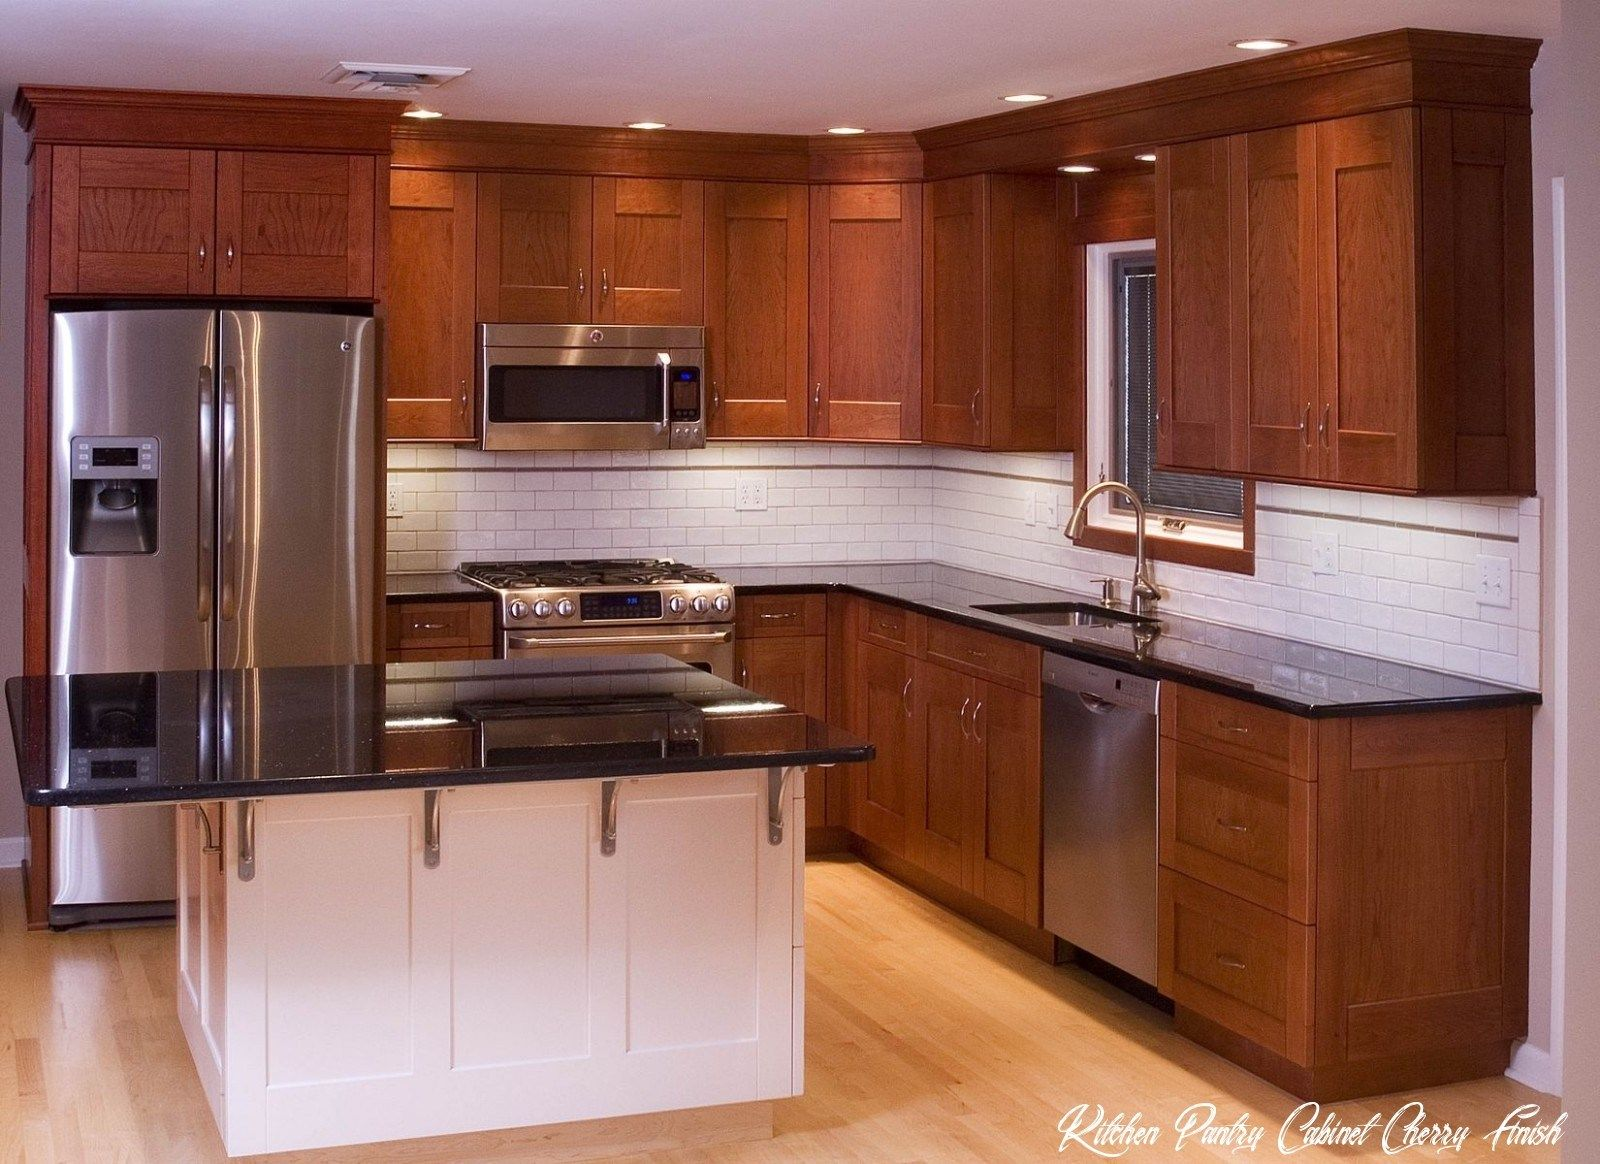 12 Kitchen Pantry Cabinet Cherry Finish In 2020 Kitchen Layout Small Kitchen Countertops Cherry Cabinets Kitchen